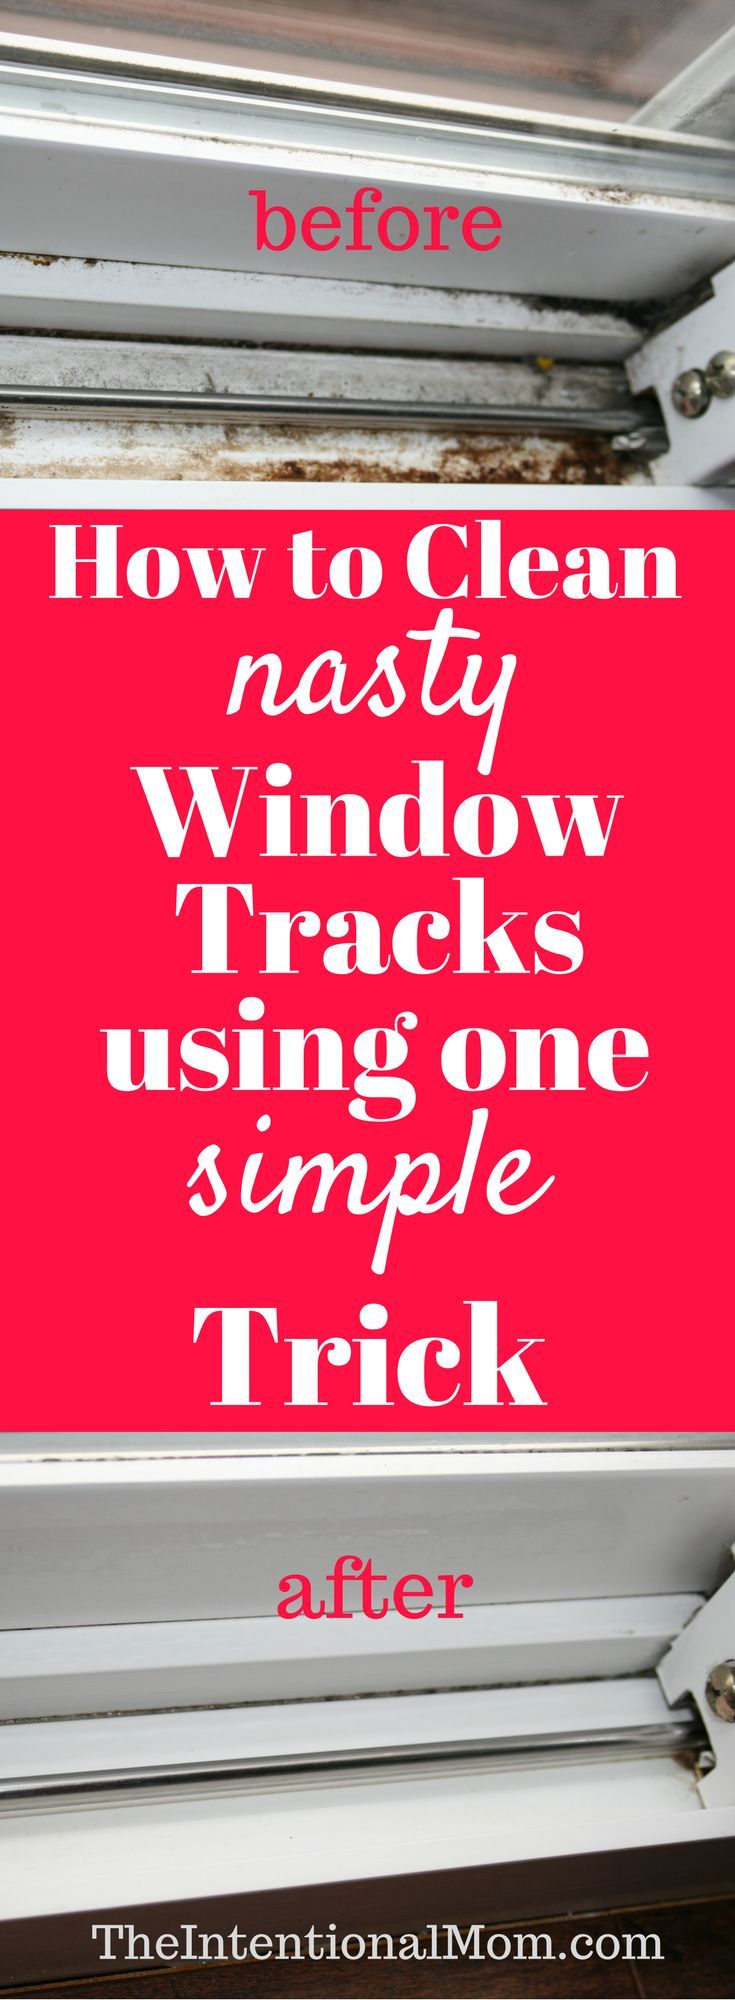 How to clean nasty windows with one trick!